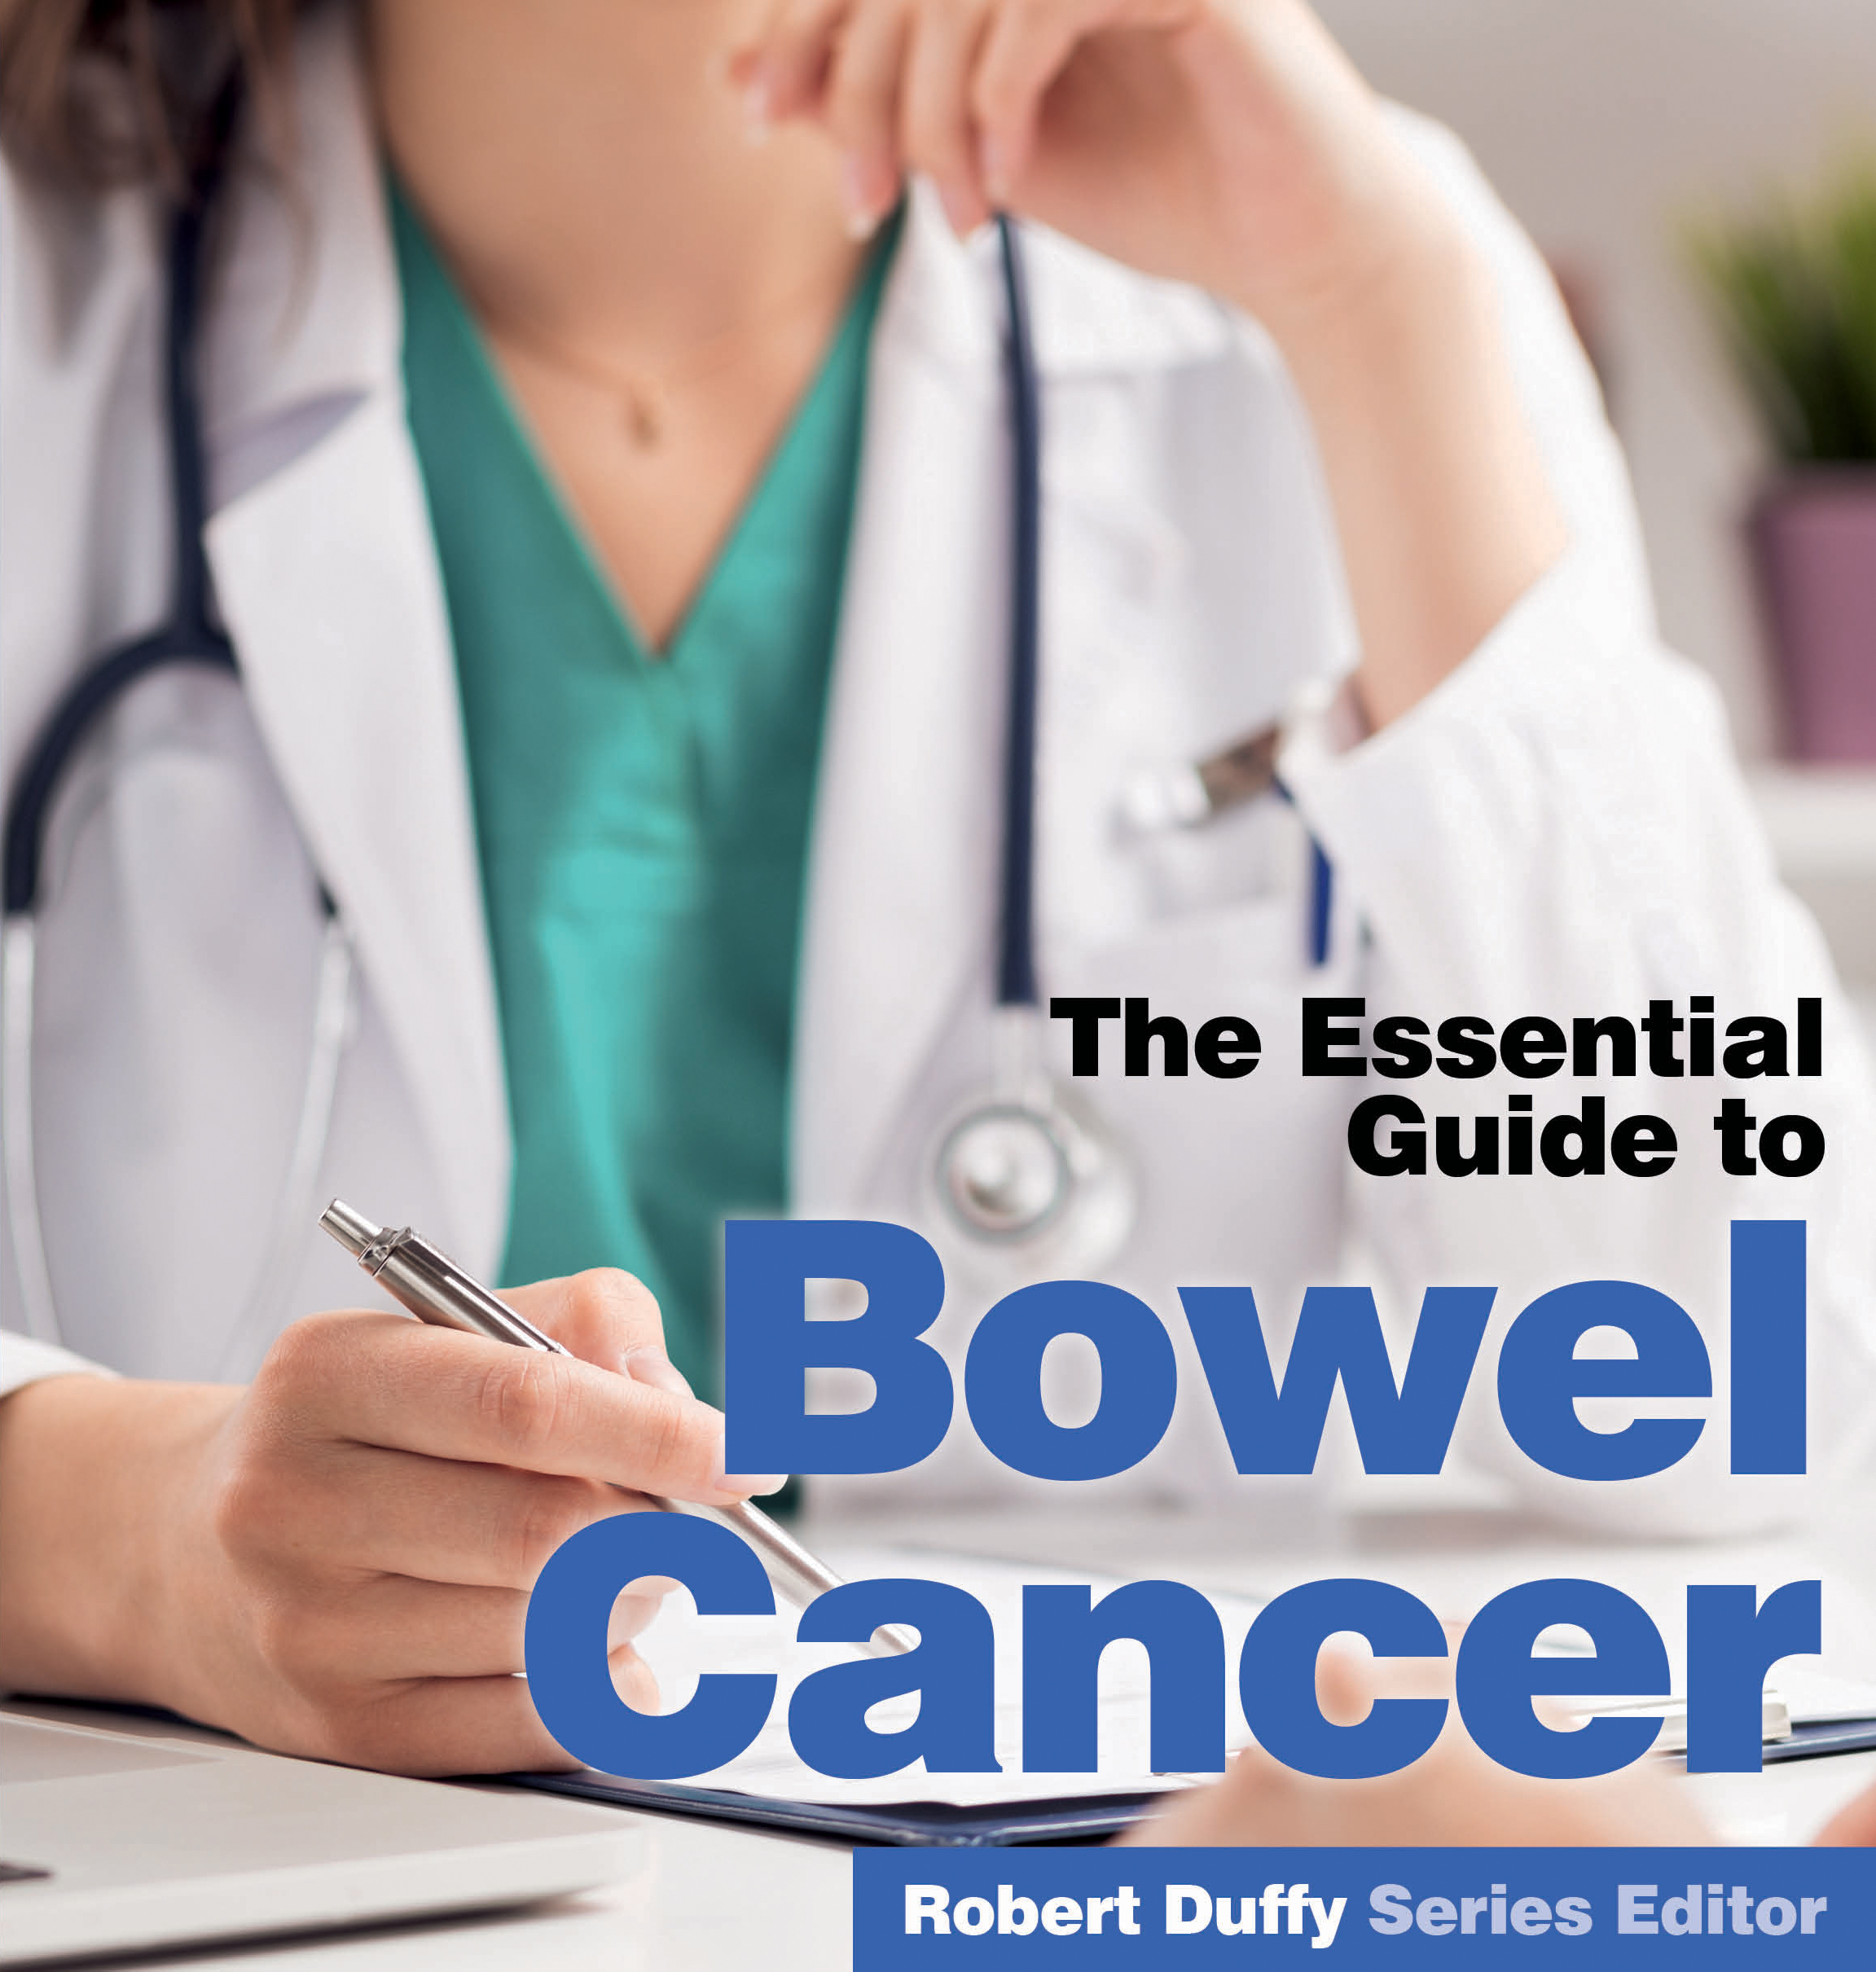 The Essential Guide To Bowel Cancer